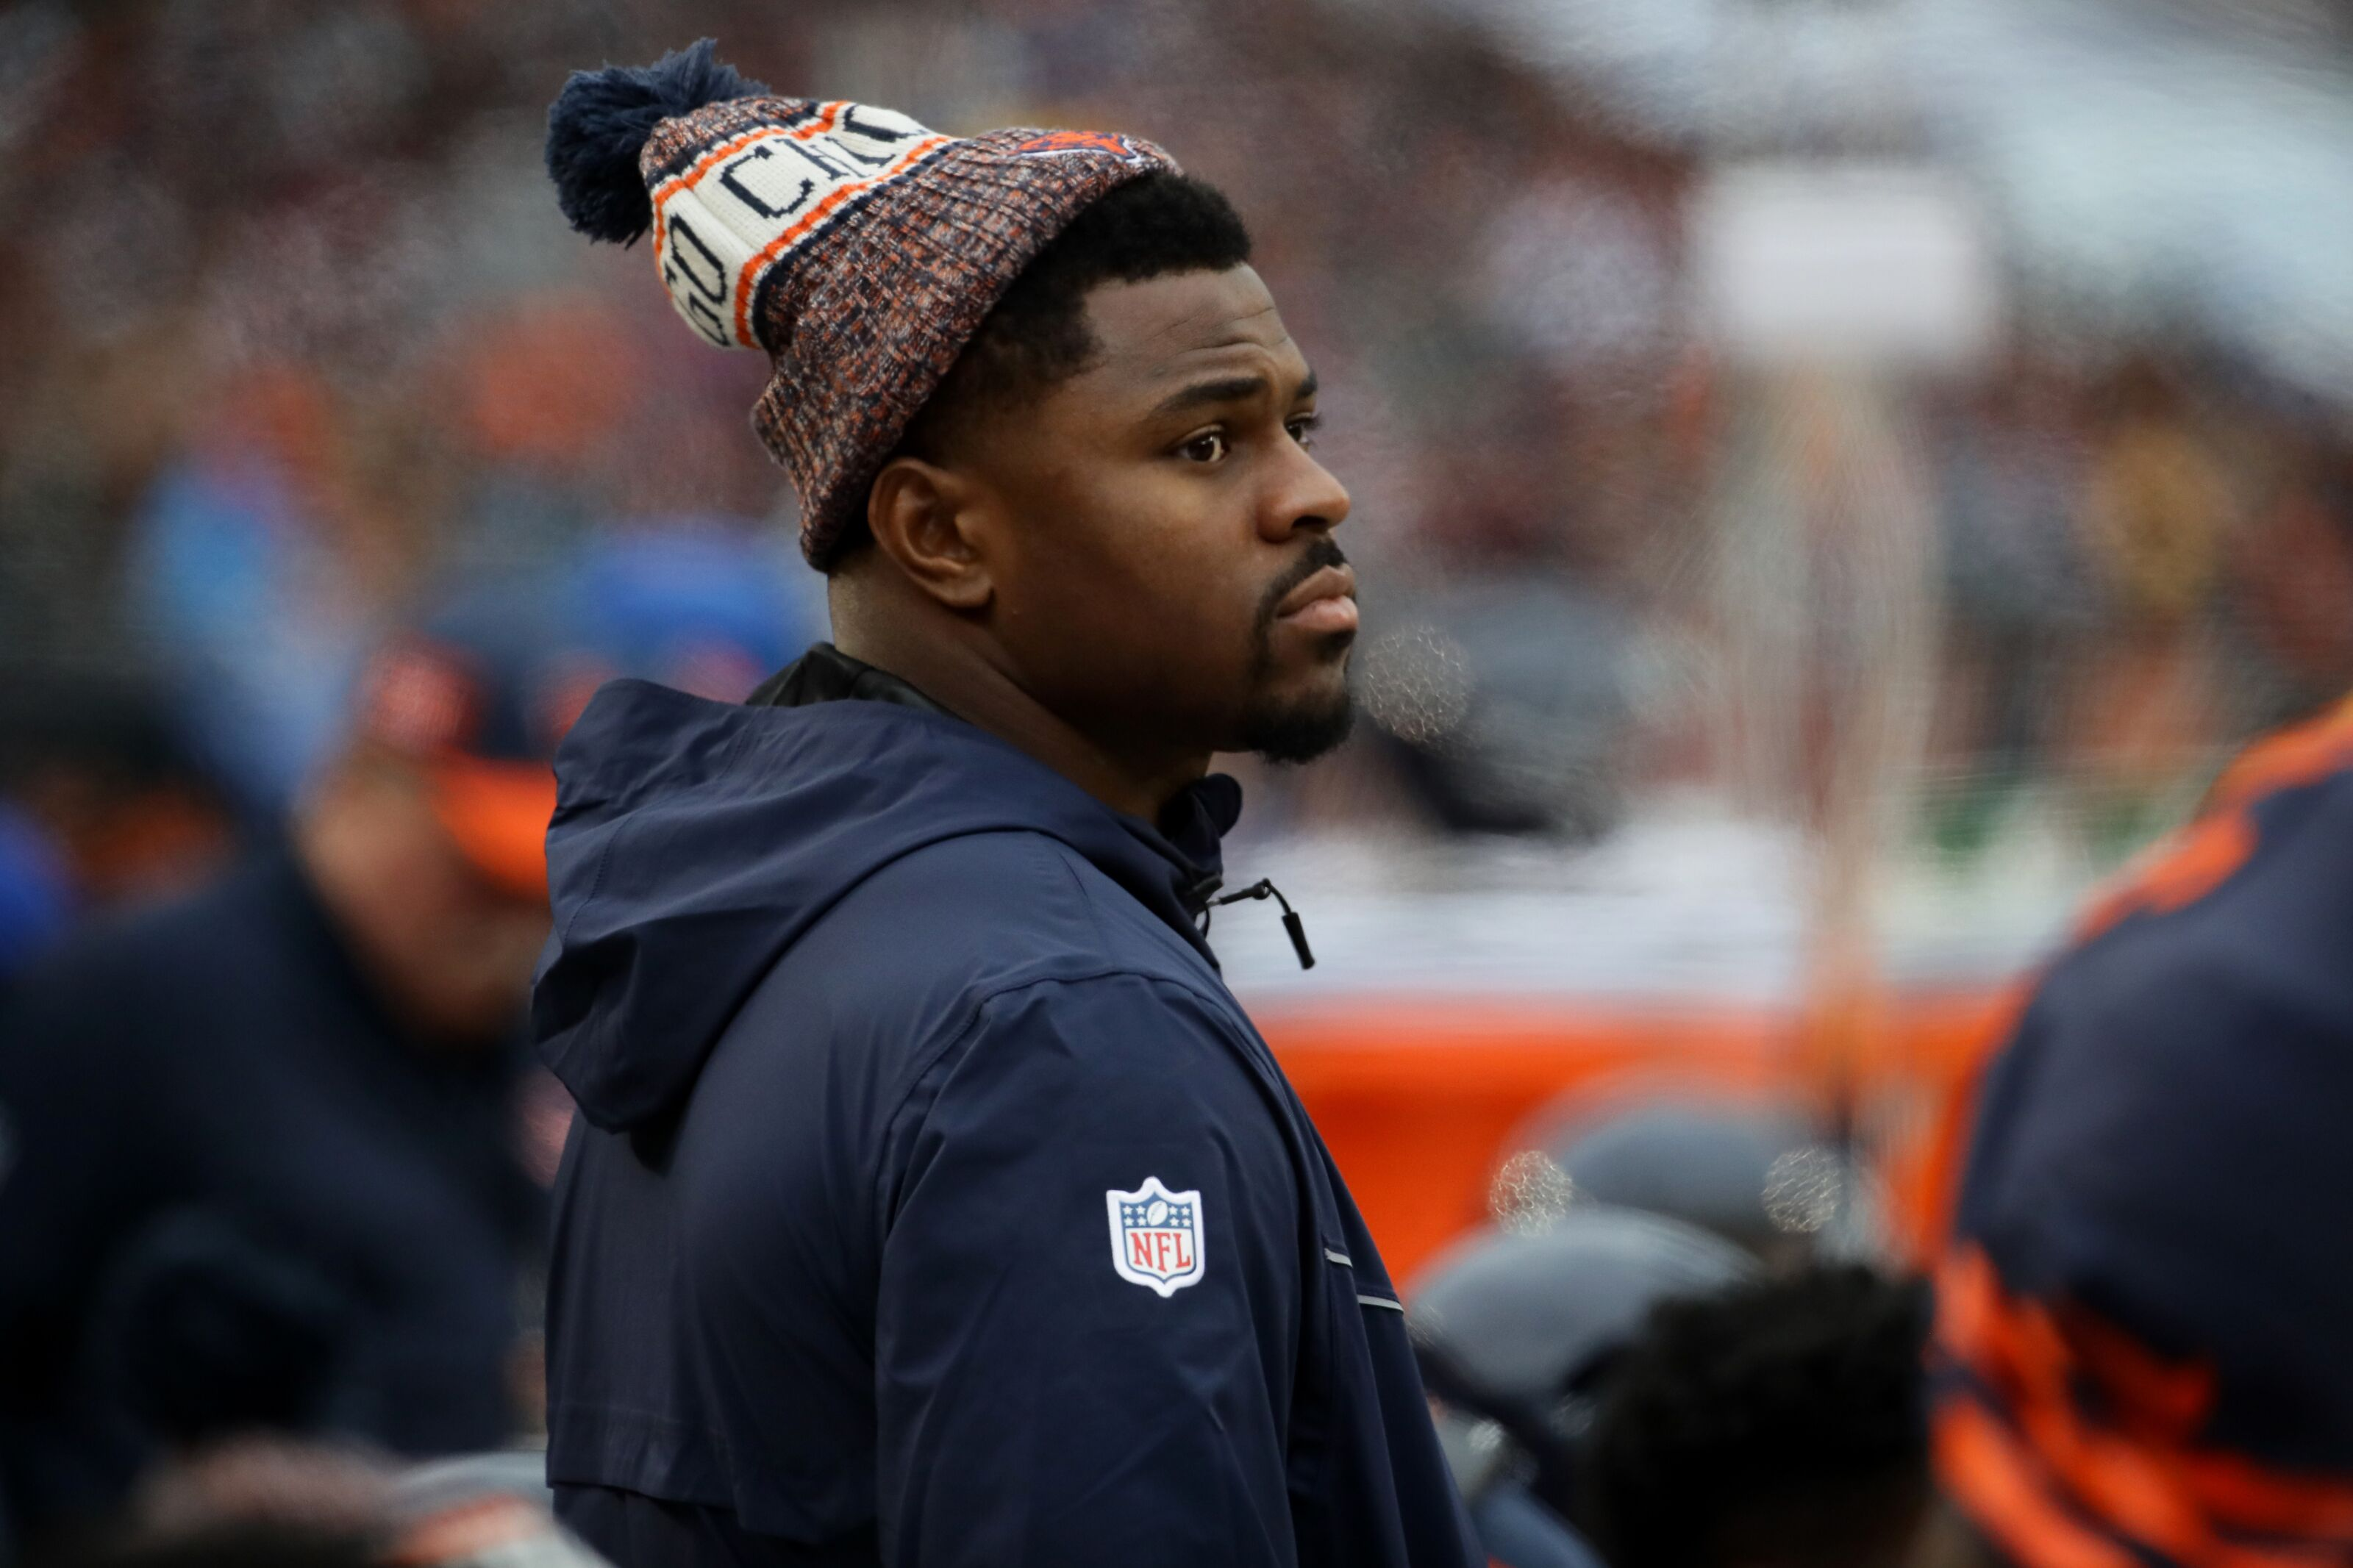 CHICAGO, IL - OCTOBER 28: Khalil Mack #52 of the Chicago Bears stands on the sidelines in the first quarter against the New York Jets at Soldier Field on October 28, 2018 in Chicago, Illinois. (Photo by Jonathan Daniel/Getty Images)